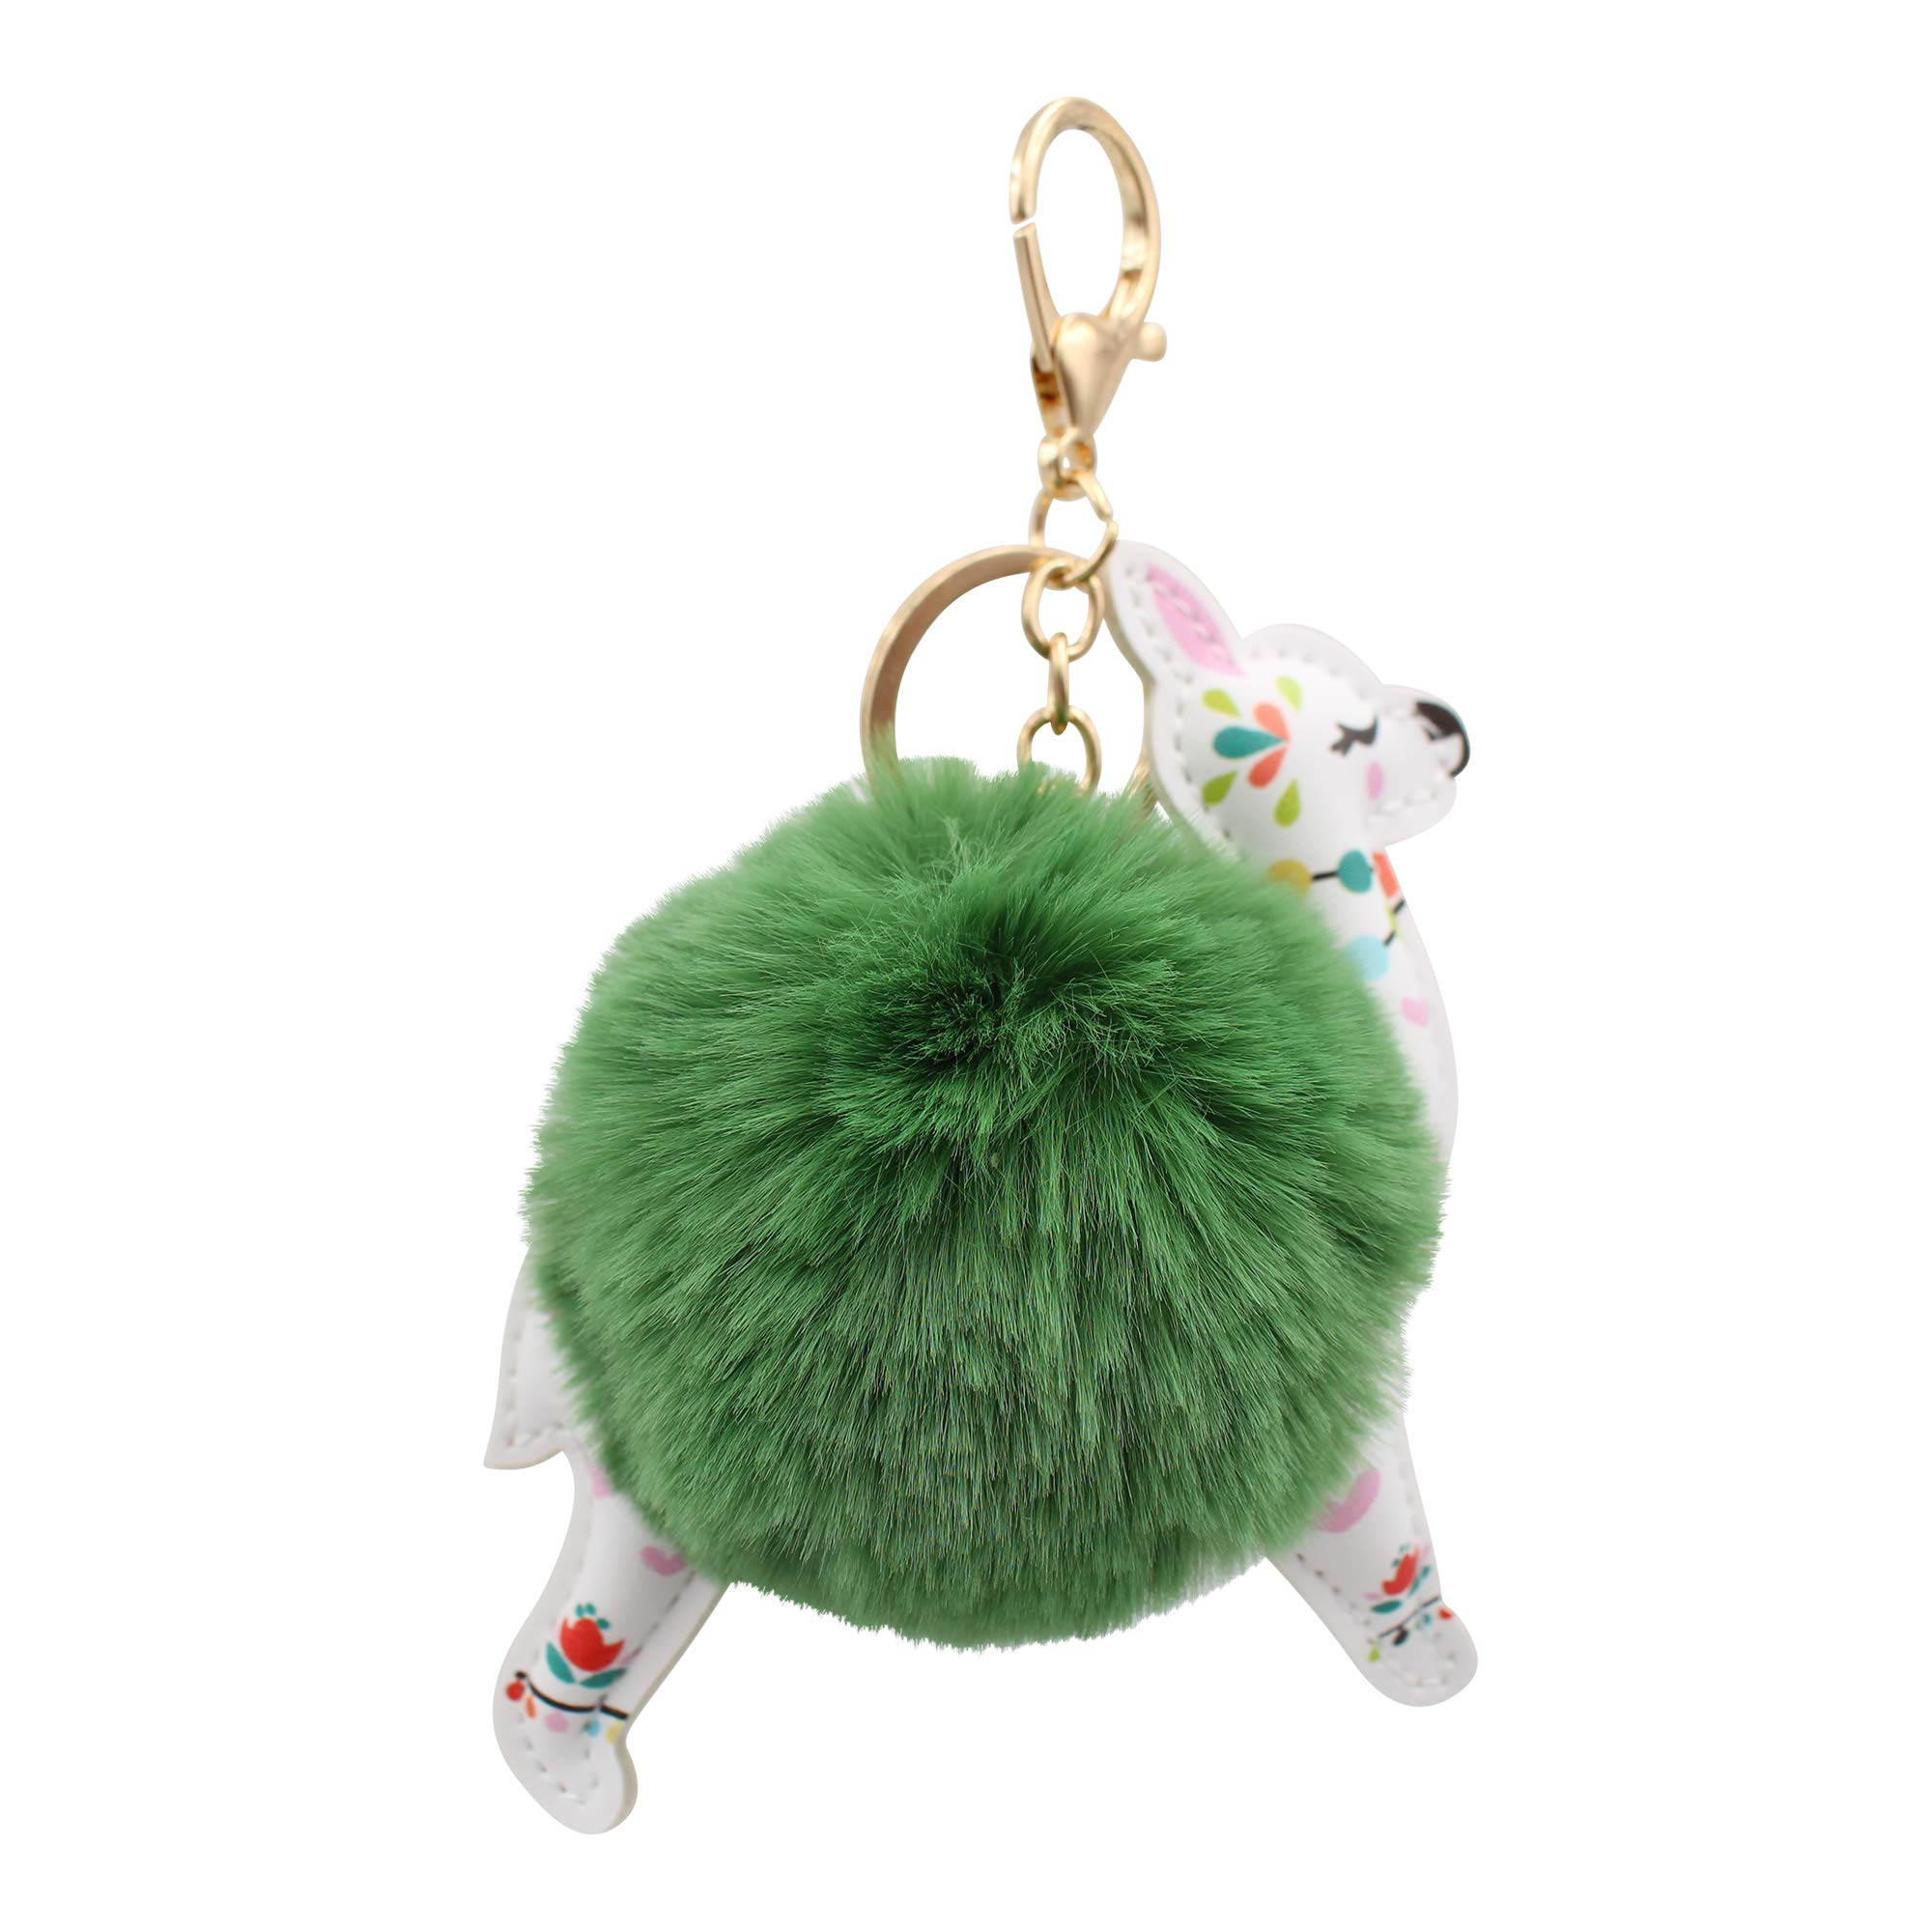 REAL SIC Alpaca/Llama Pom Pom Keychain - Faux Fur Fluffy Fuzzy Charm For Women & Girls